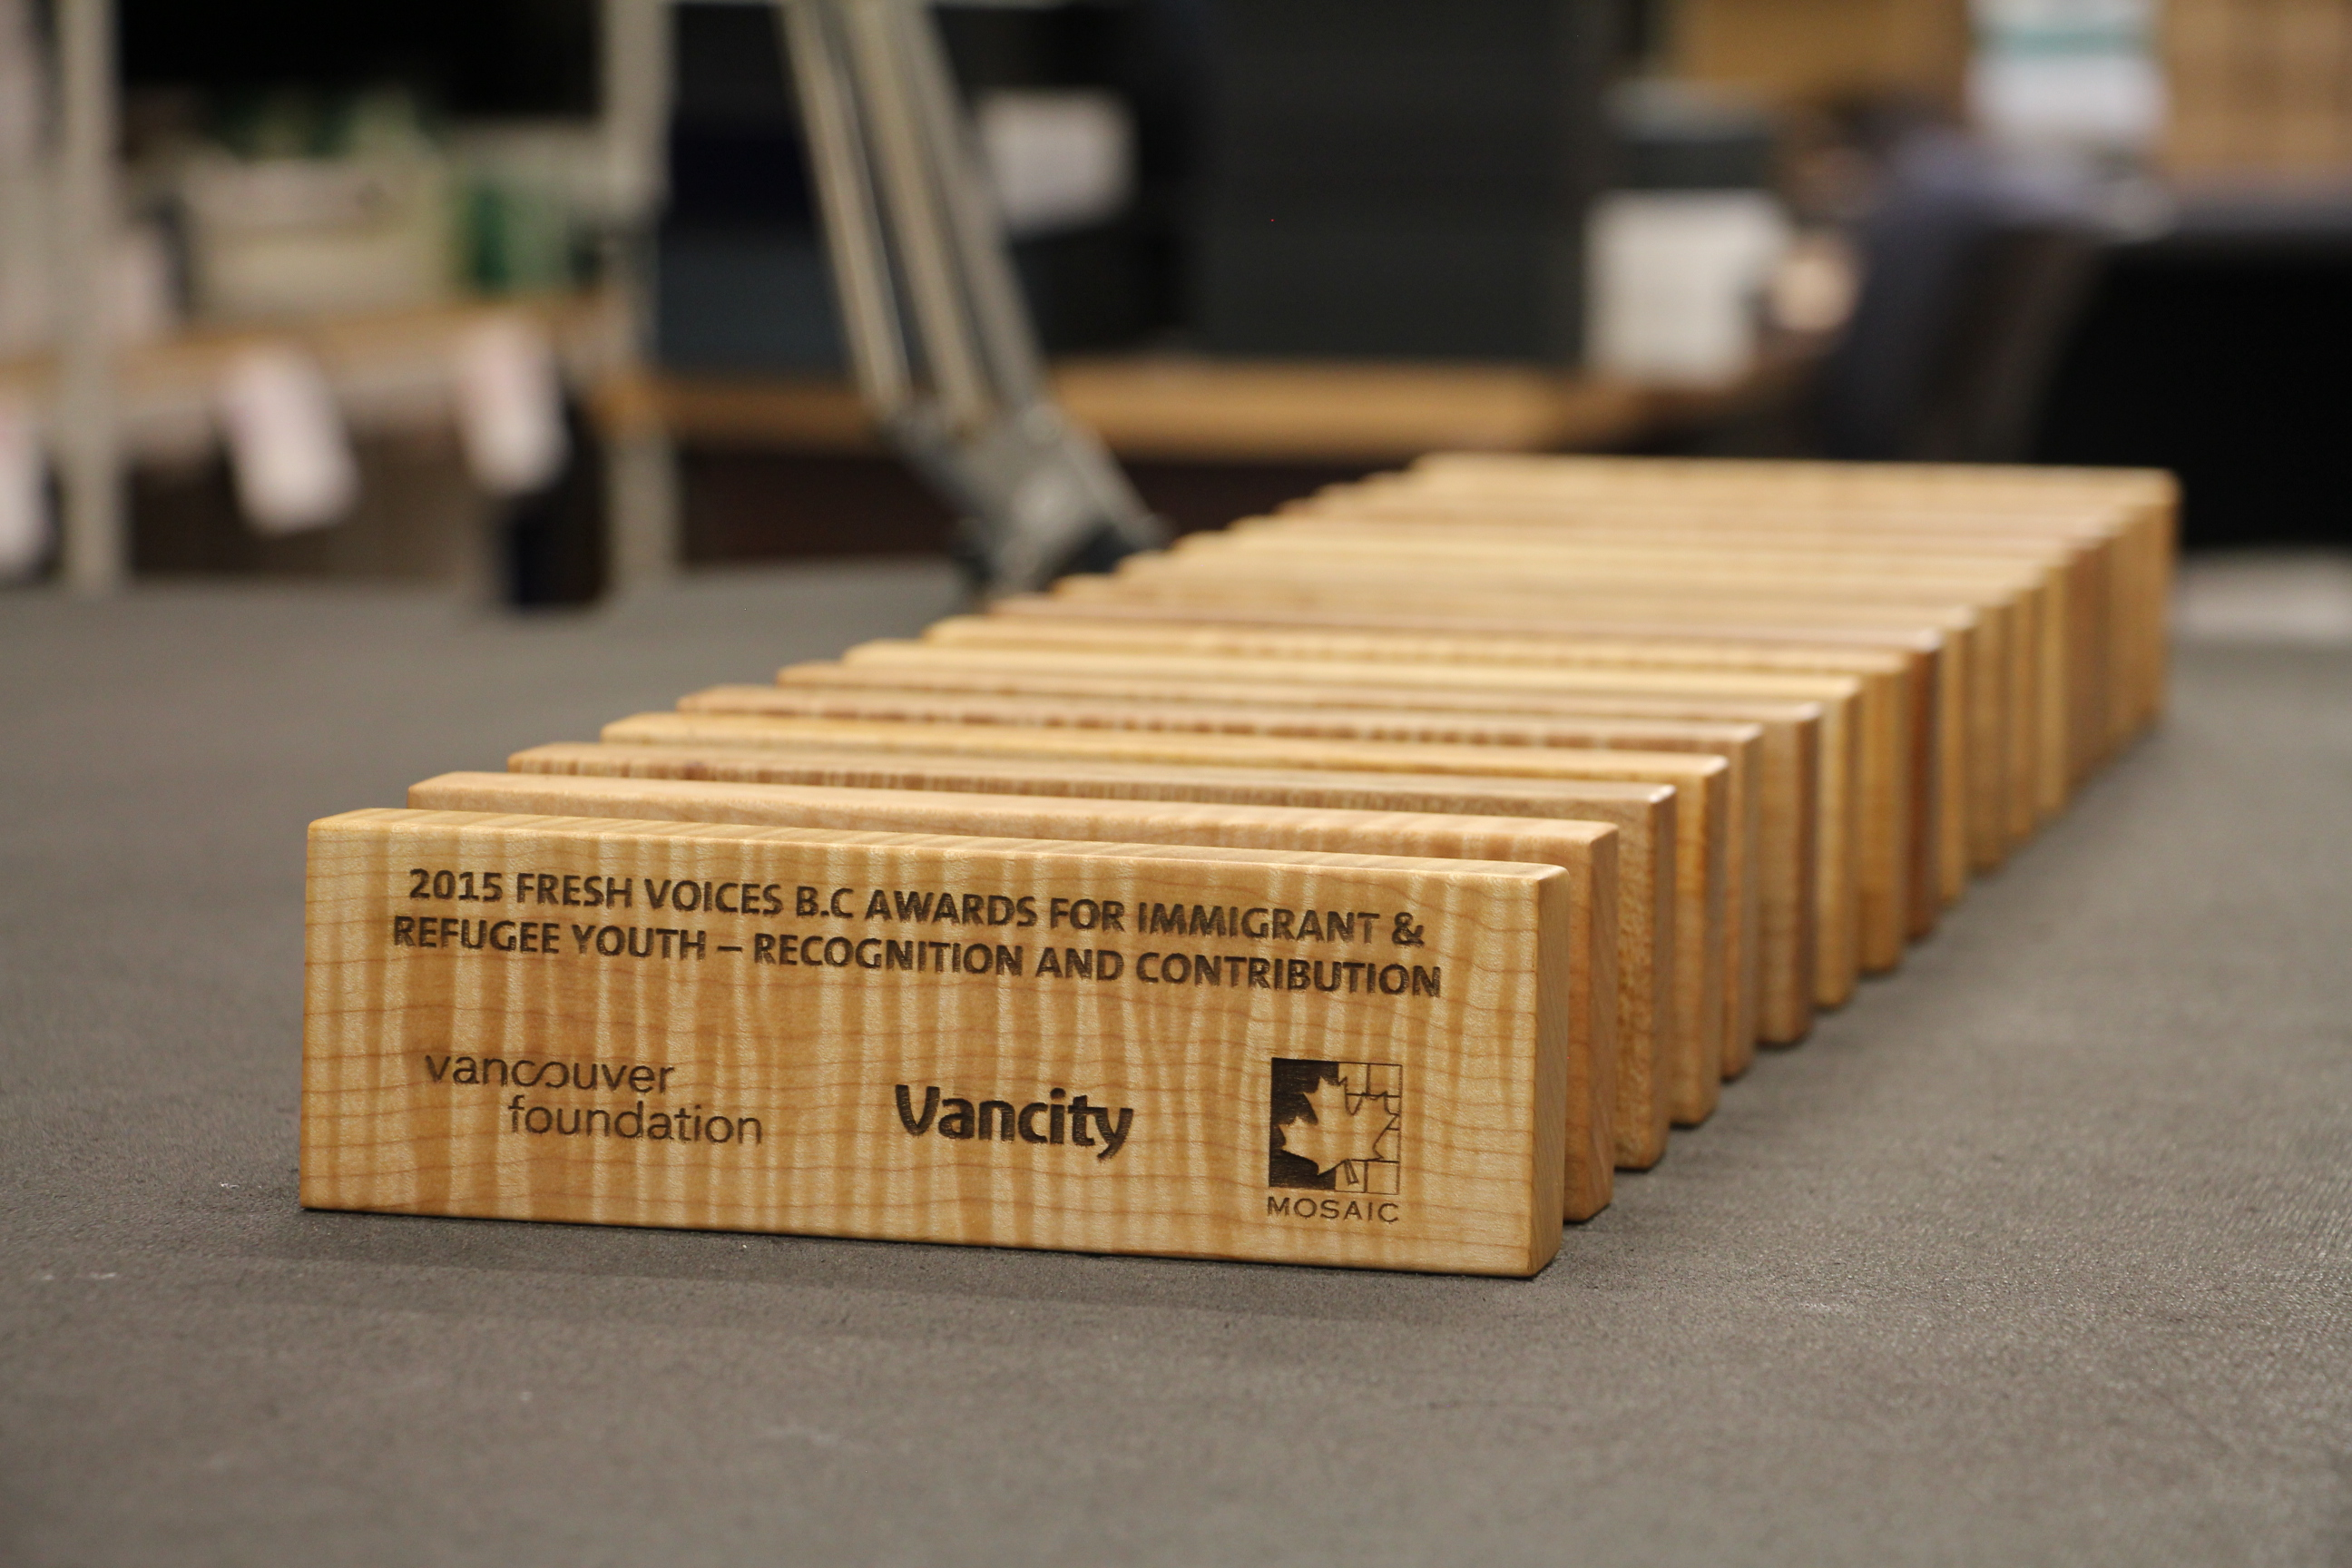 custom-award_sustainable_laser-engraved_salvaged-wood_corporate_recognition-award_vancouver